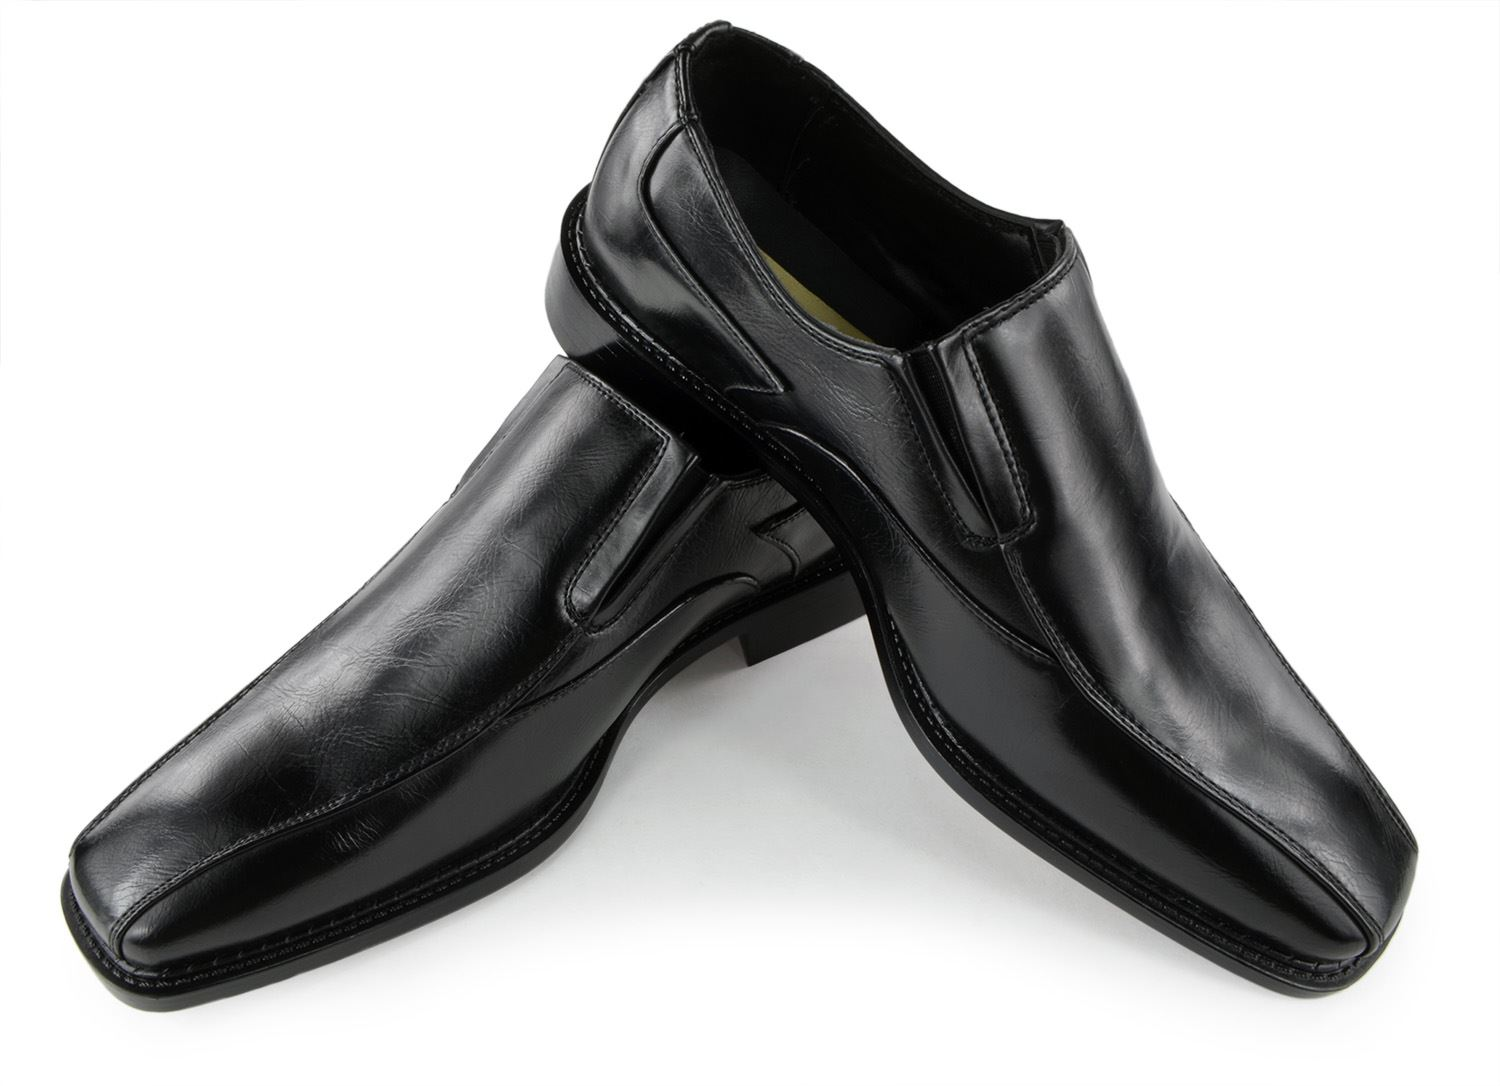 Moda Di Raza Mens Slip On Comfortable Leather Wedding Dress Shoes -Black-6524/ Size: 9